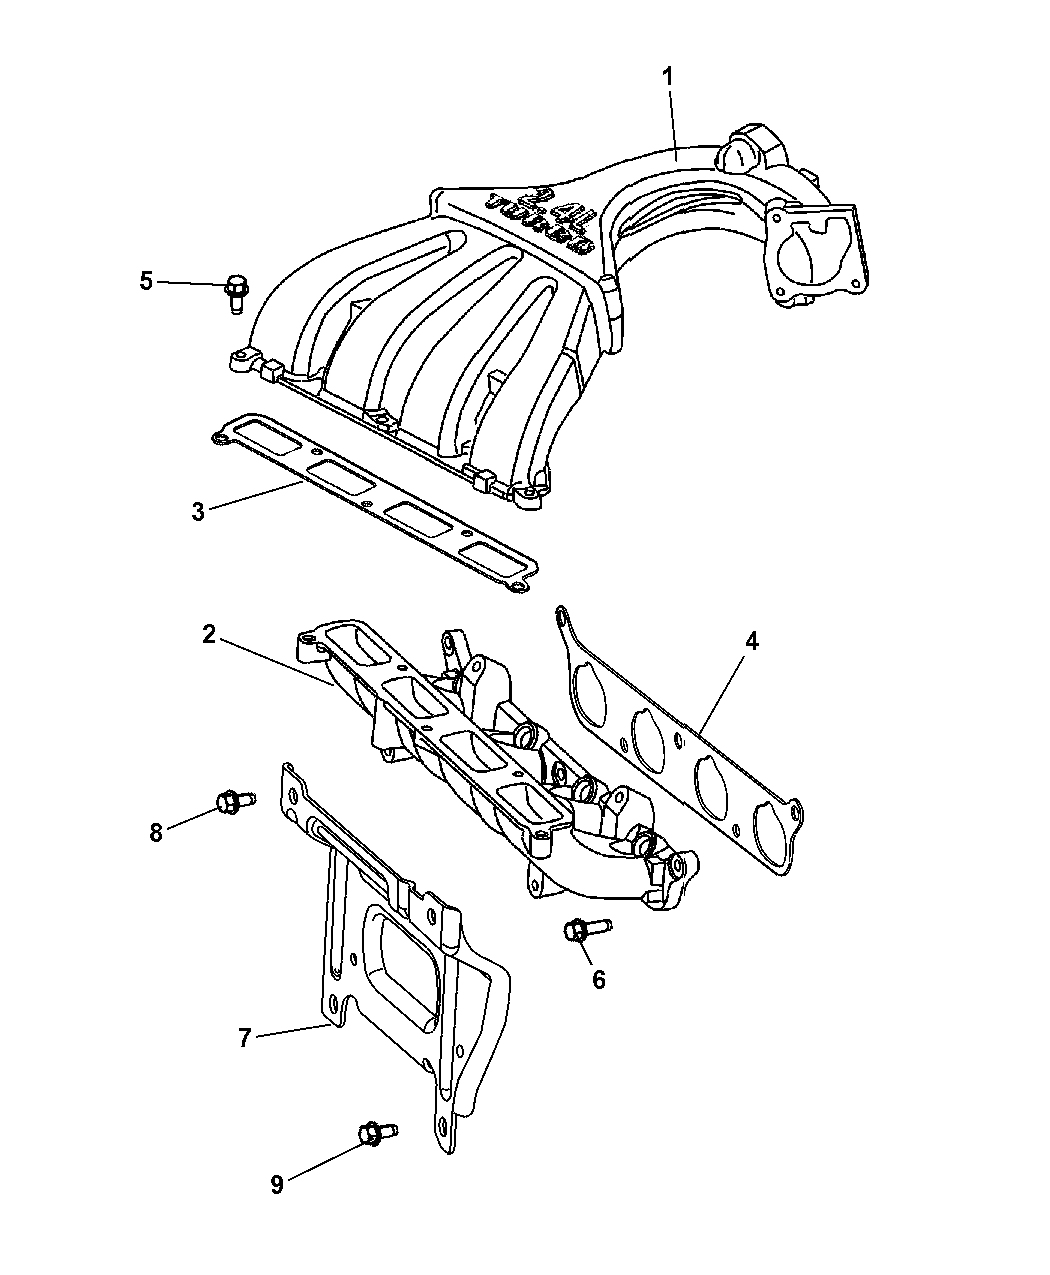 P 0996b43f8037ea34 moreover 7szfo No Vacuum Going 1 2 Electric Solenoids Right together with 2002 Dodge Neon Timing Belt Diagram Html also 1996 Volkswagen Cabrio Golf Jetta Air Conditioner Heater Wiring Diagram And Schematics together with Chevy Equinox 2 4 Liter Timing Belt Or Chain. on pt cruiser 2 4l engine diagram